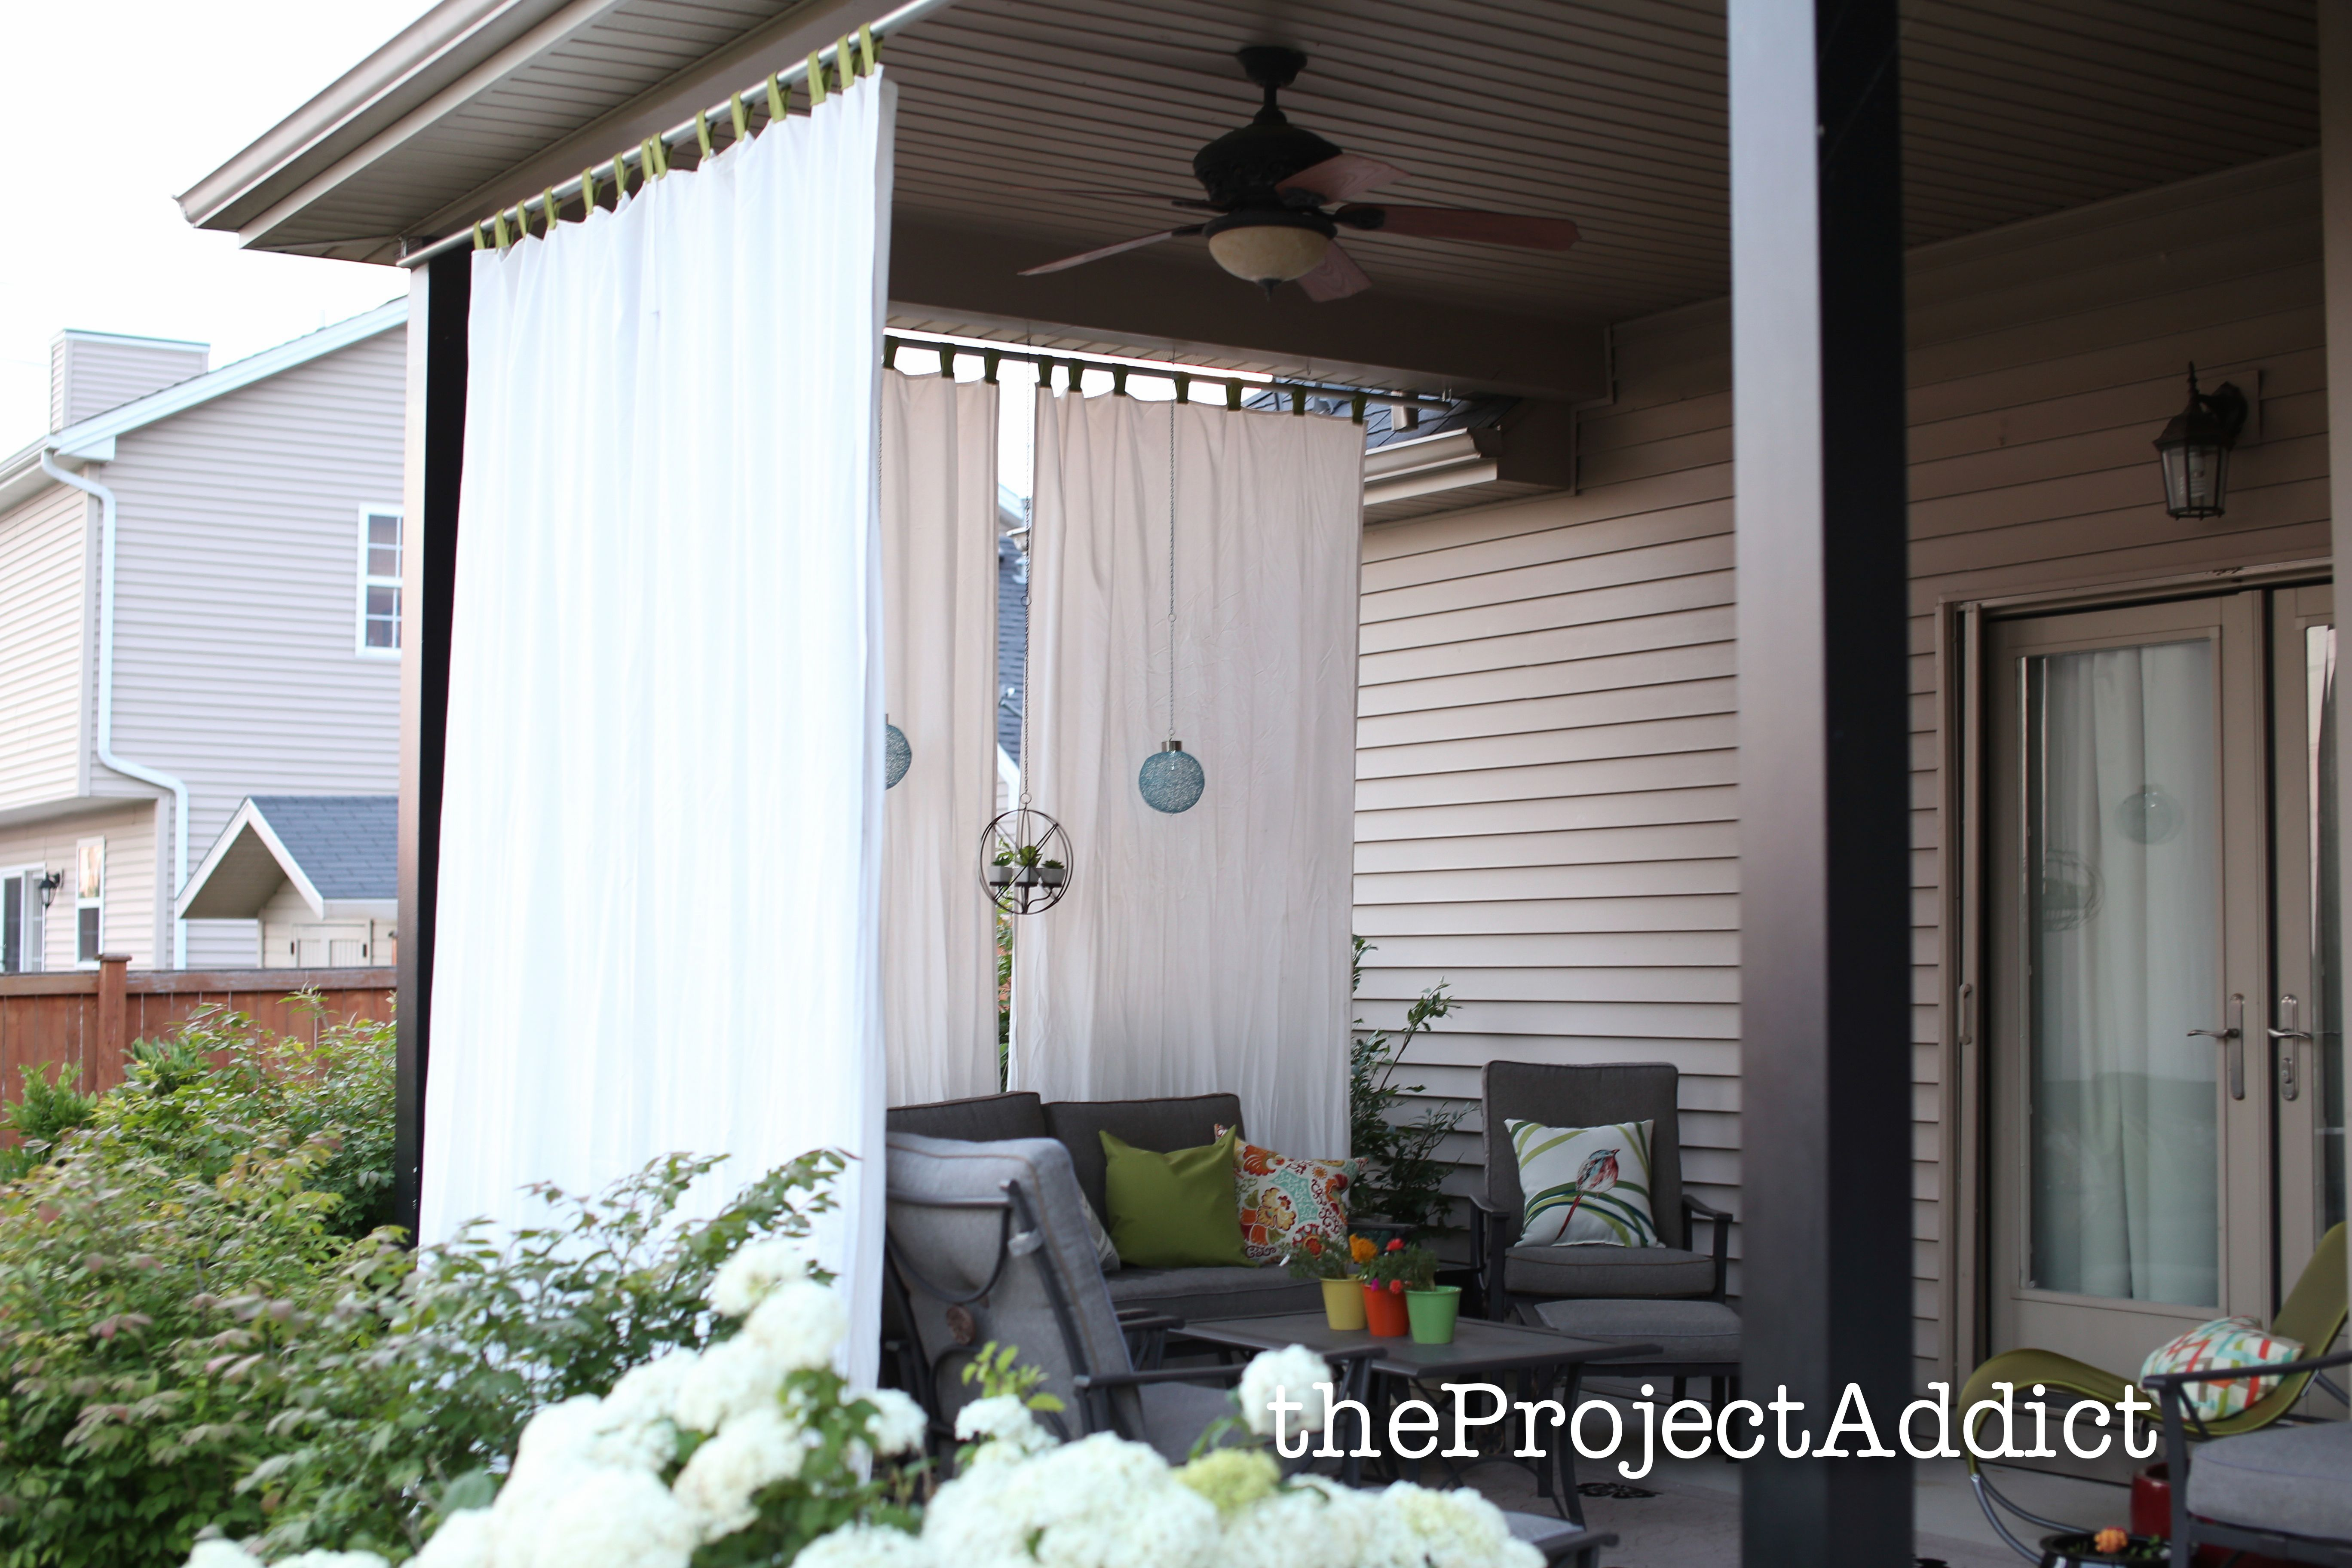 Diy Outdoor Curtains 1 Of 16 Jpg 5472 3648 Outdoor Curtains Outdoor Privacy Privacy Screen Outdoor